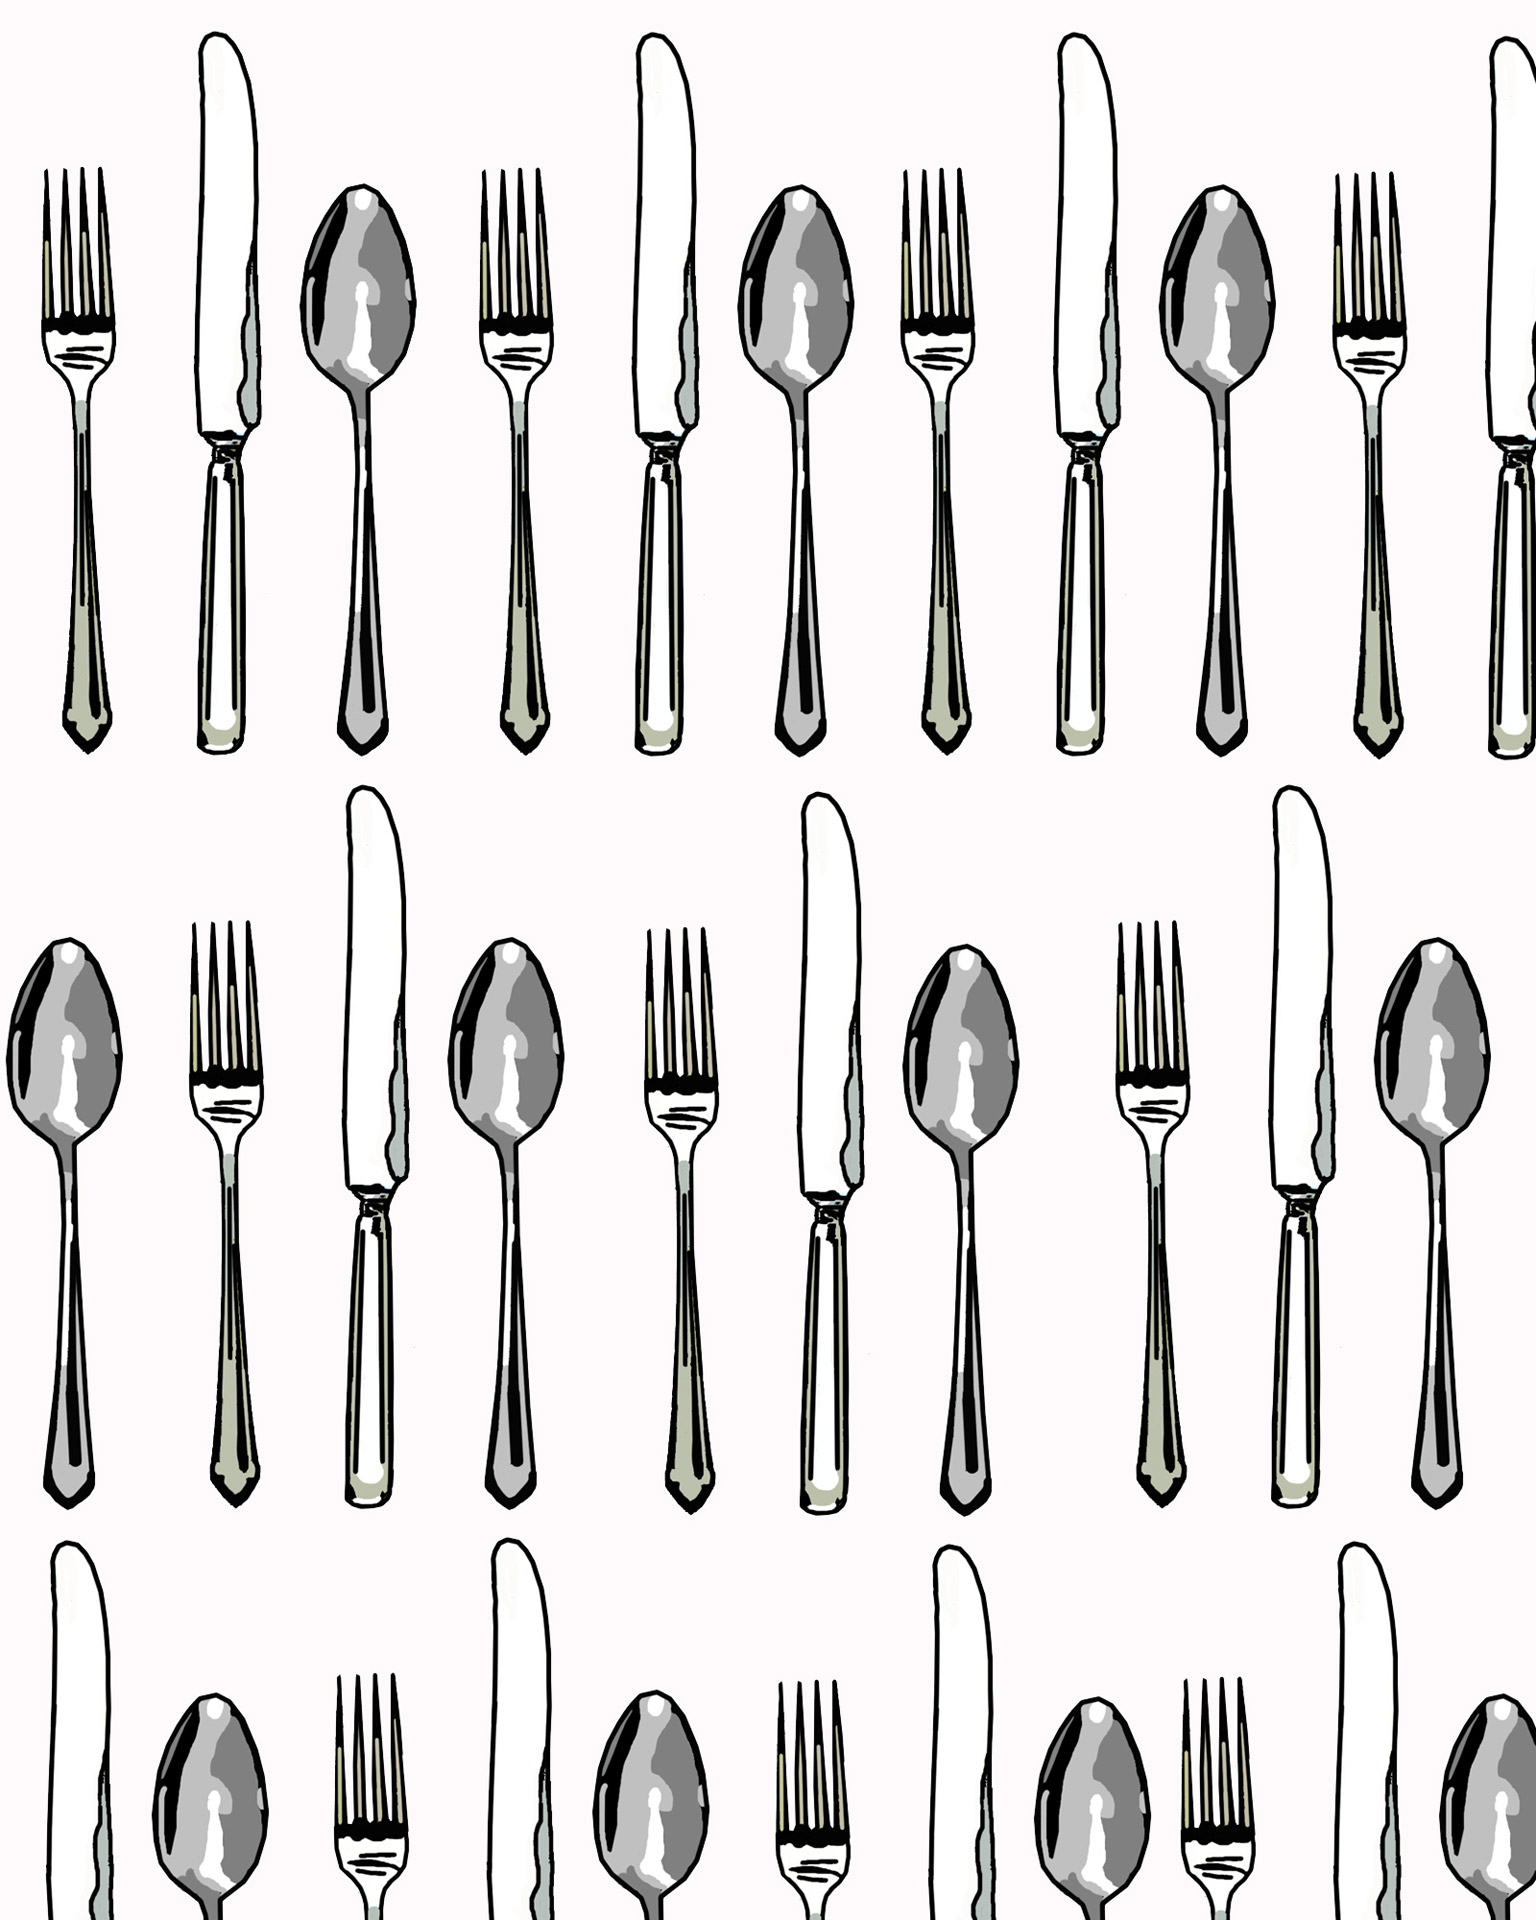 Spoons Forks Knives Set Fork Spoon And Knife Set Free Stock Photo Public Domain